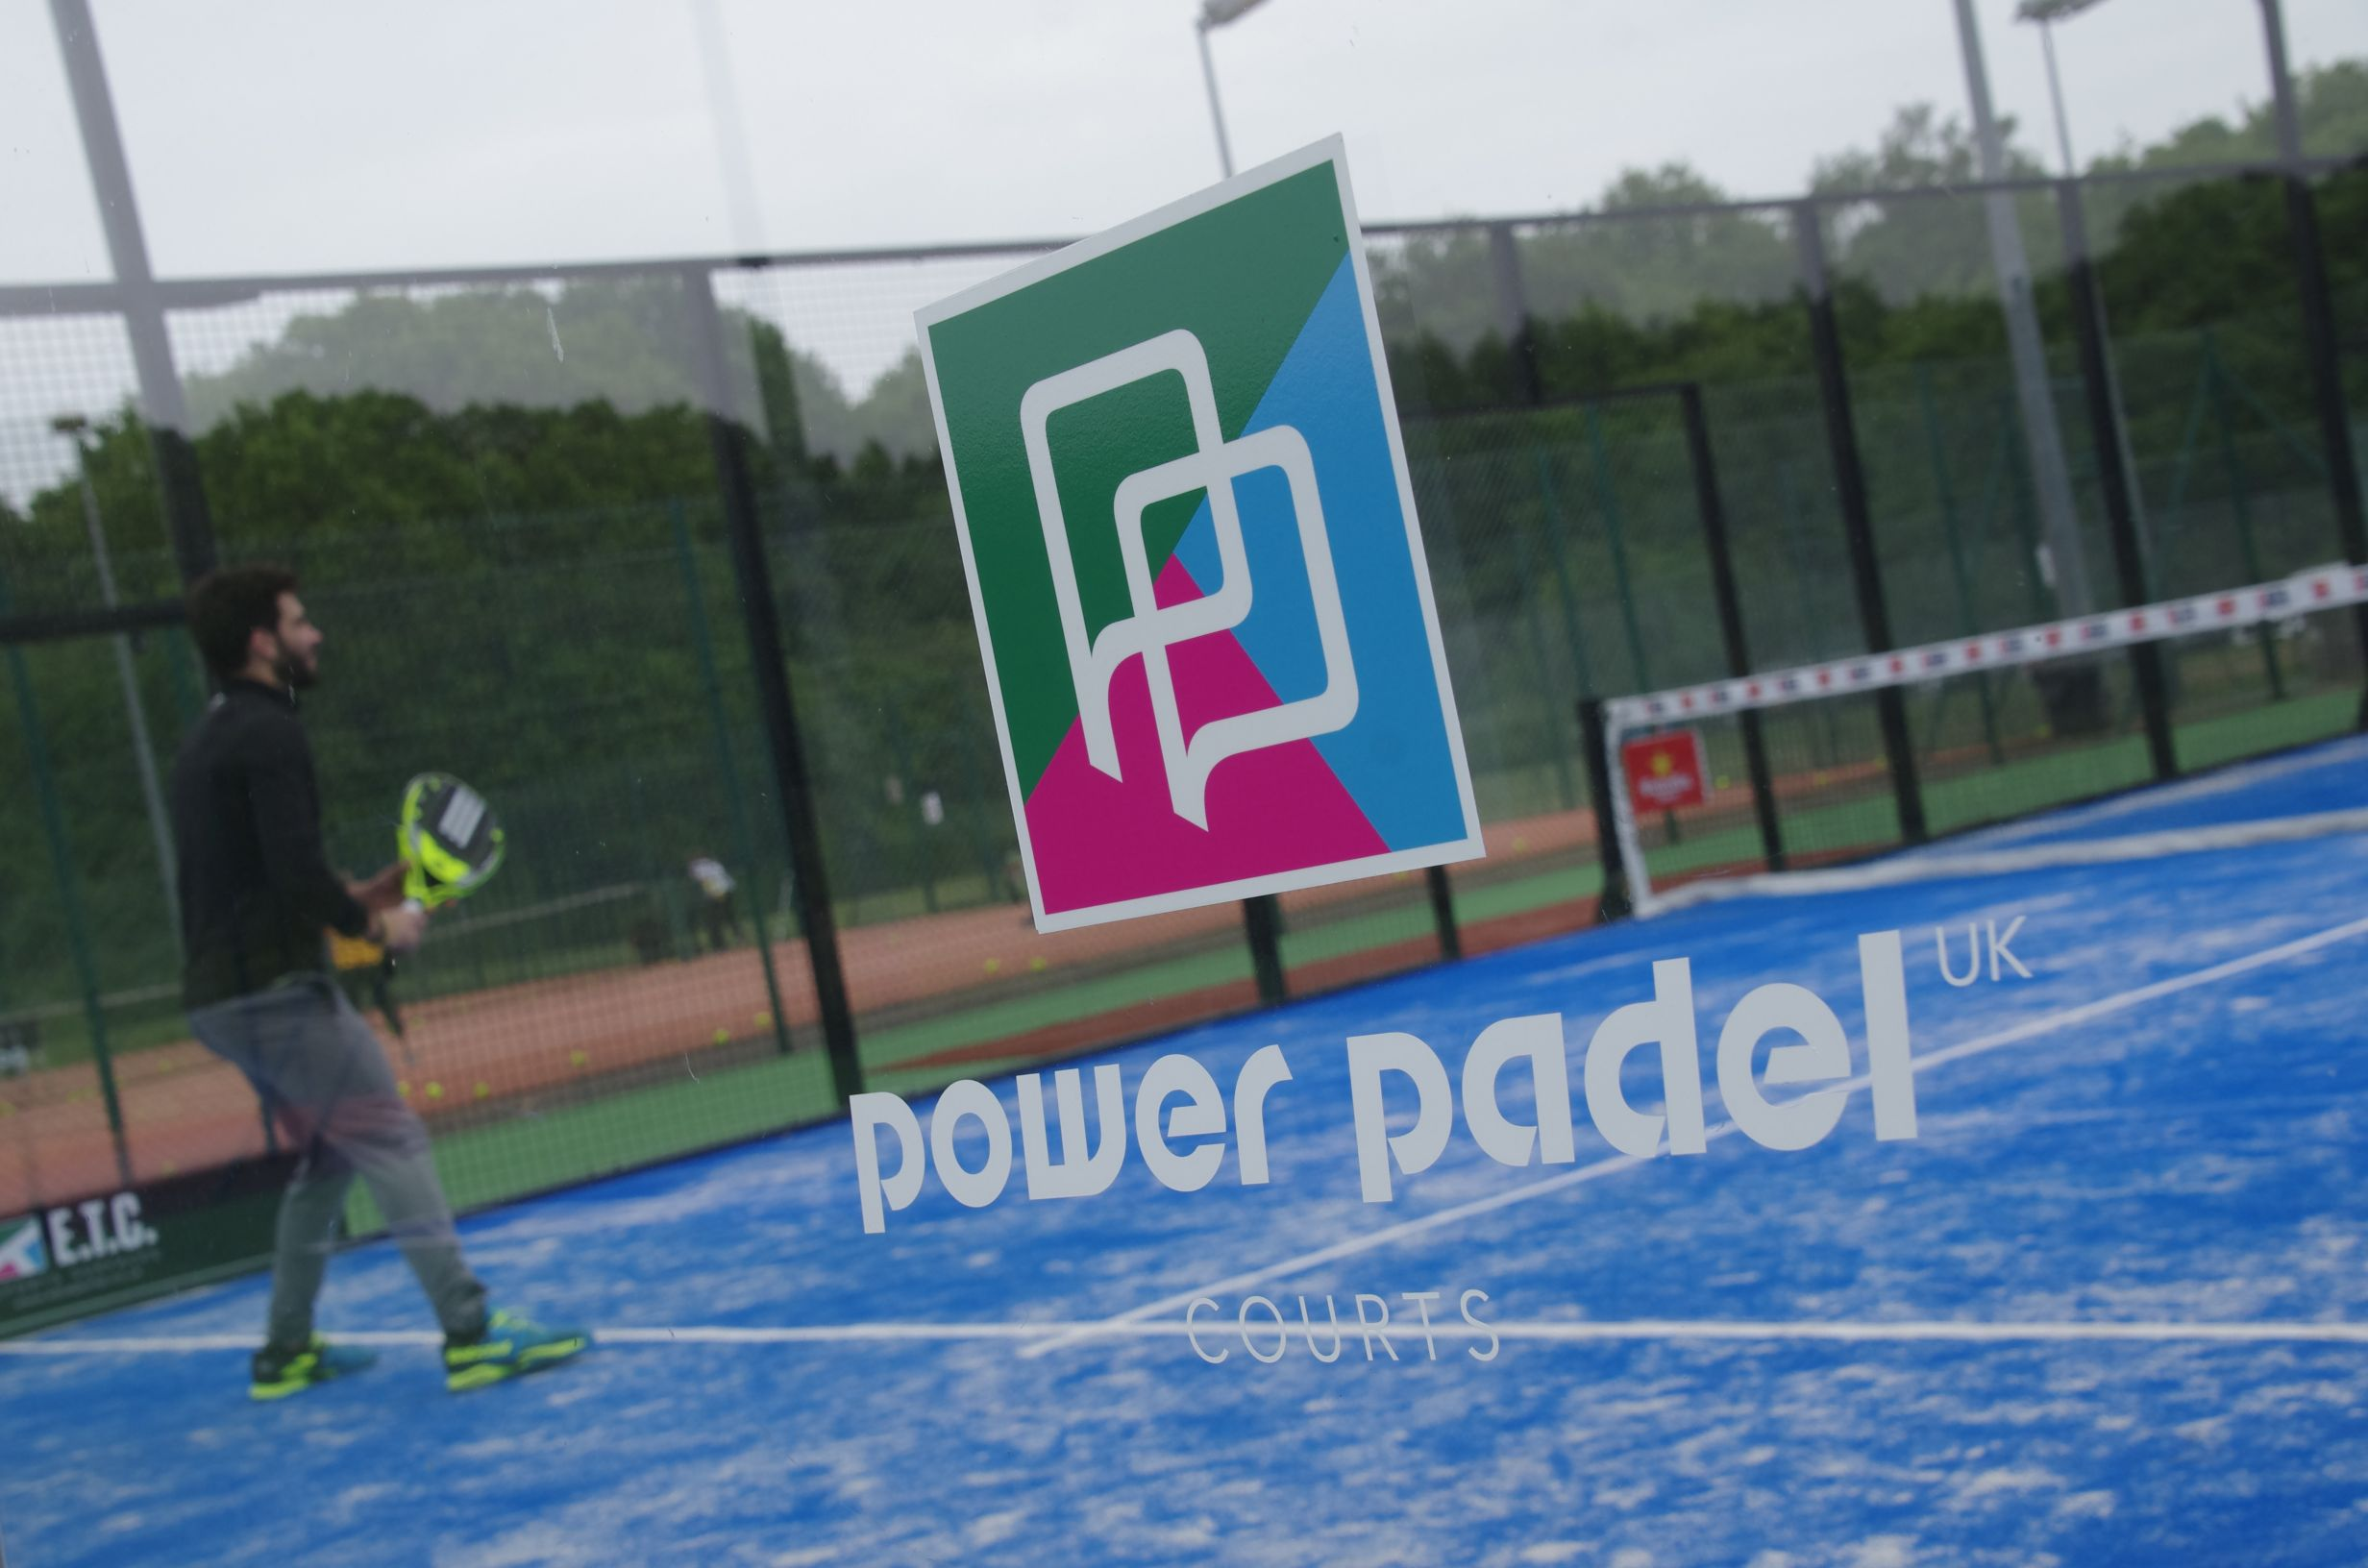 ETC Sports Surfaces are the only Padel court suppliers offering Power Padel courts in the UK.